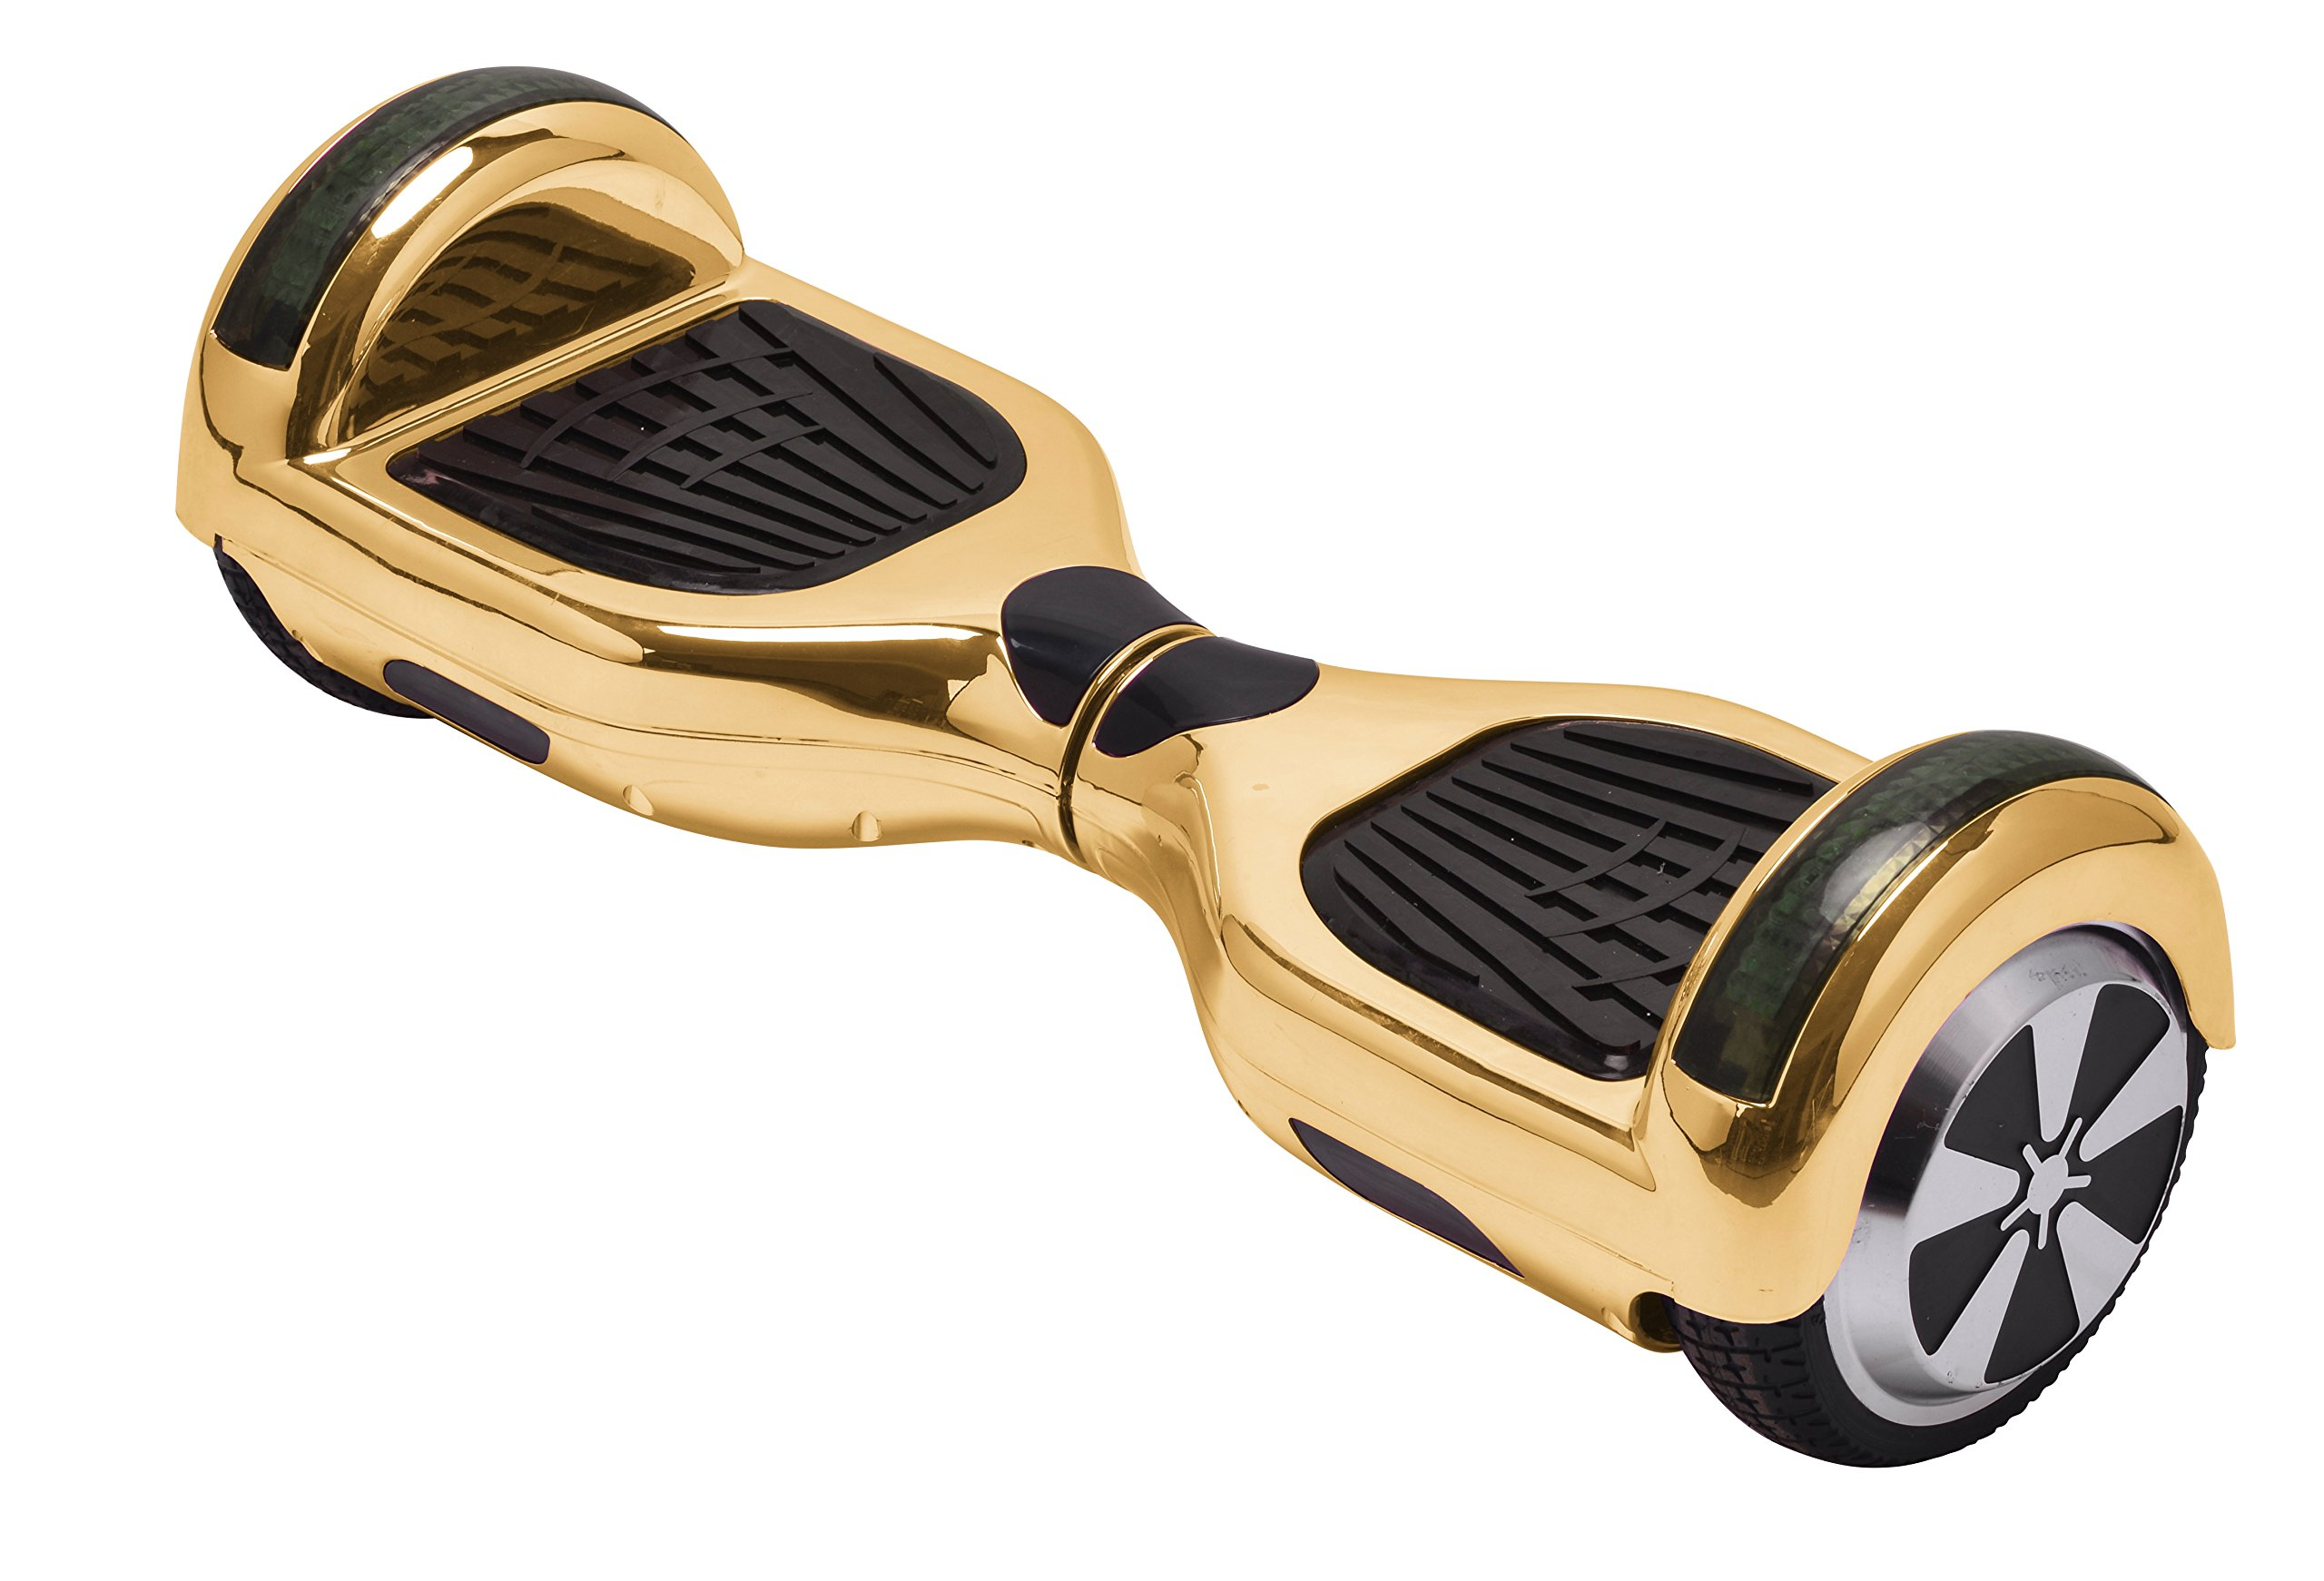 UL2272 Certified Hoverboard with Bluetooth Speaker and LED Lights Smart Self Balancing Scooter Personal Adult Transporter- Chrome Gold by Self Balance Scooter (Image #4)